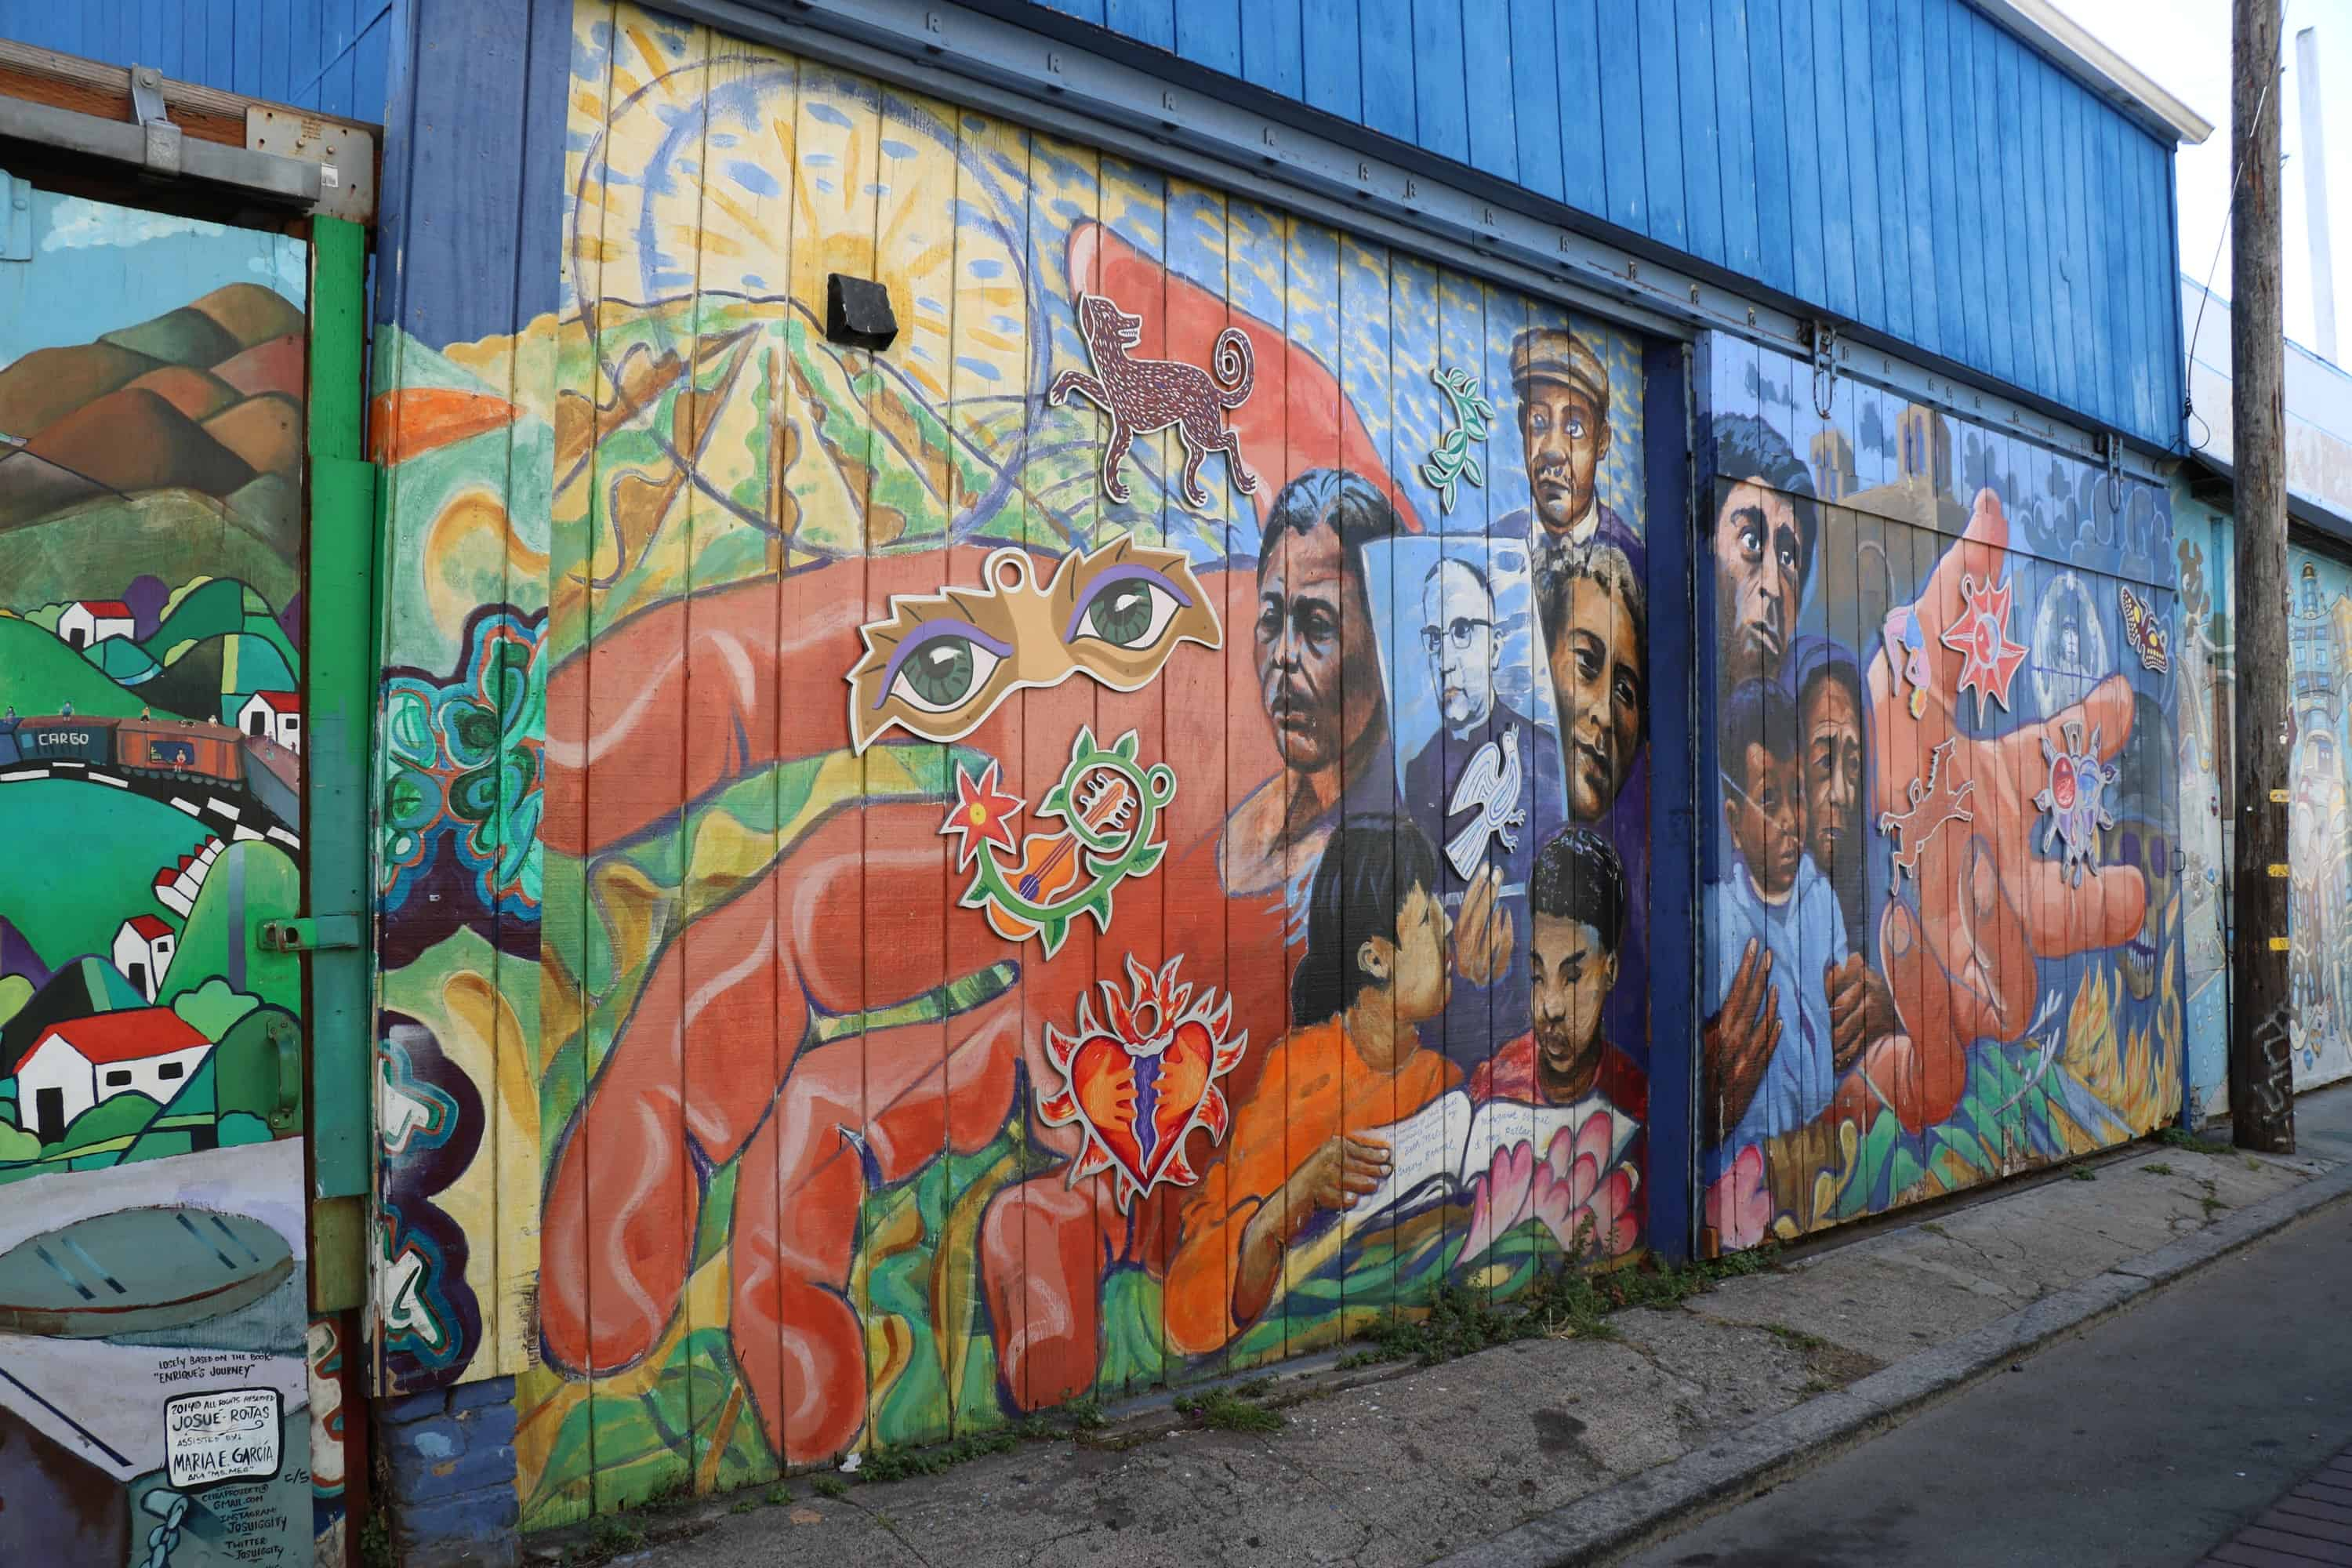 Mission District - Alleys and Murals